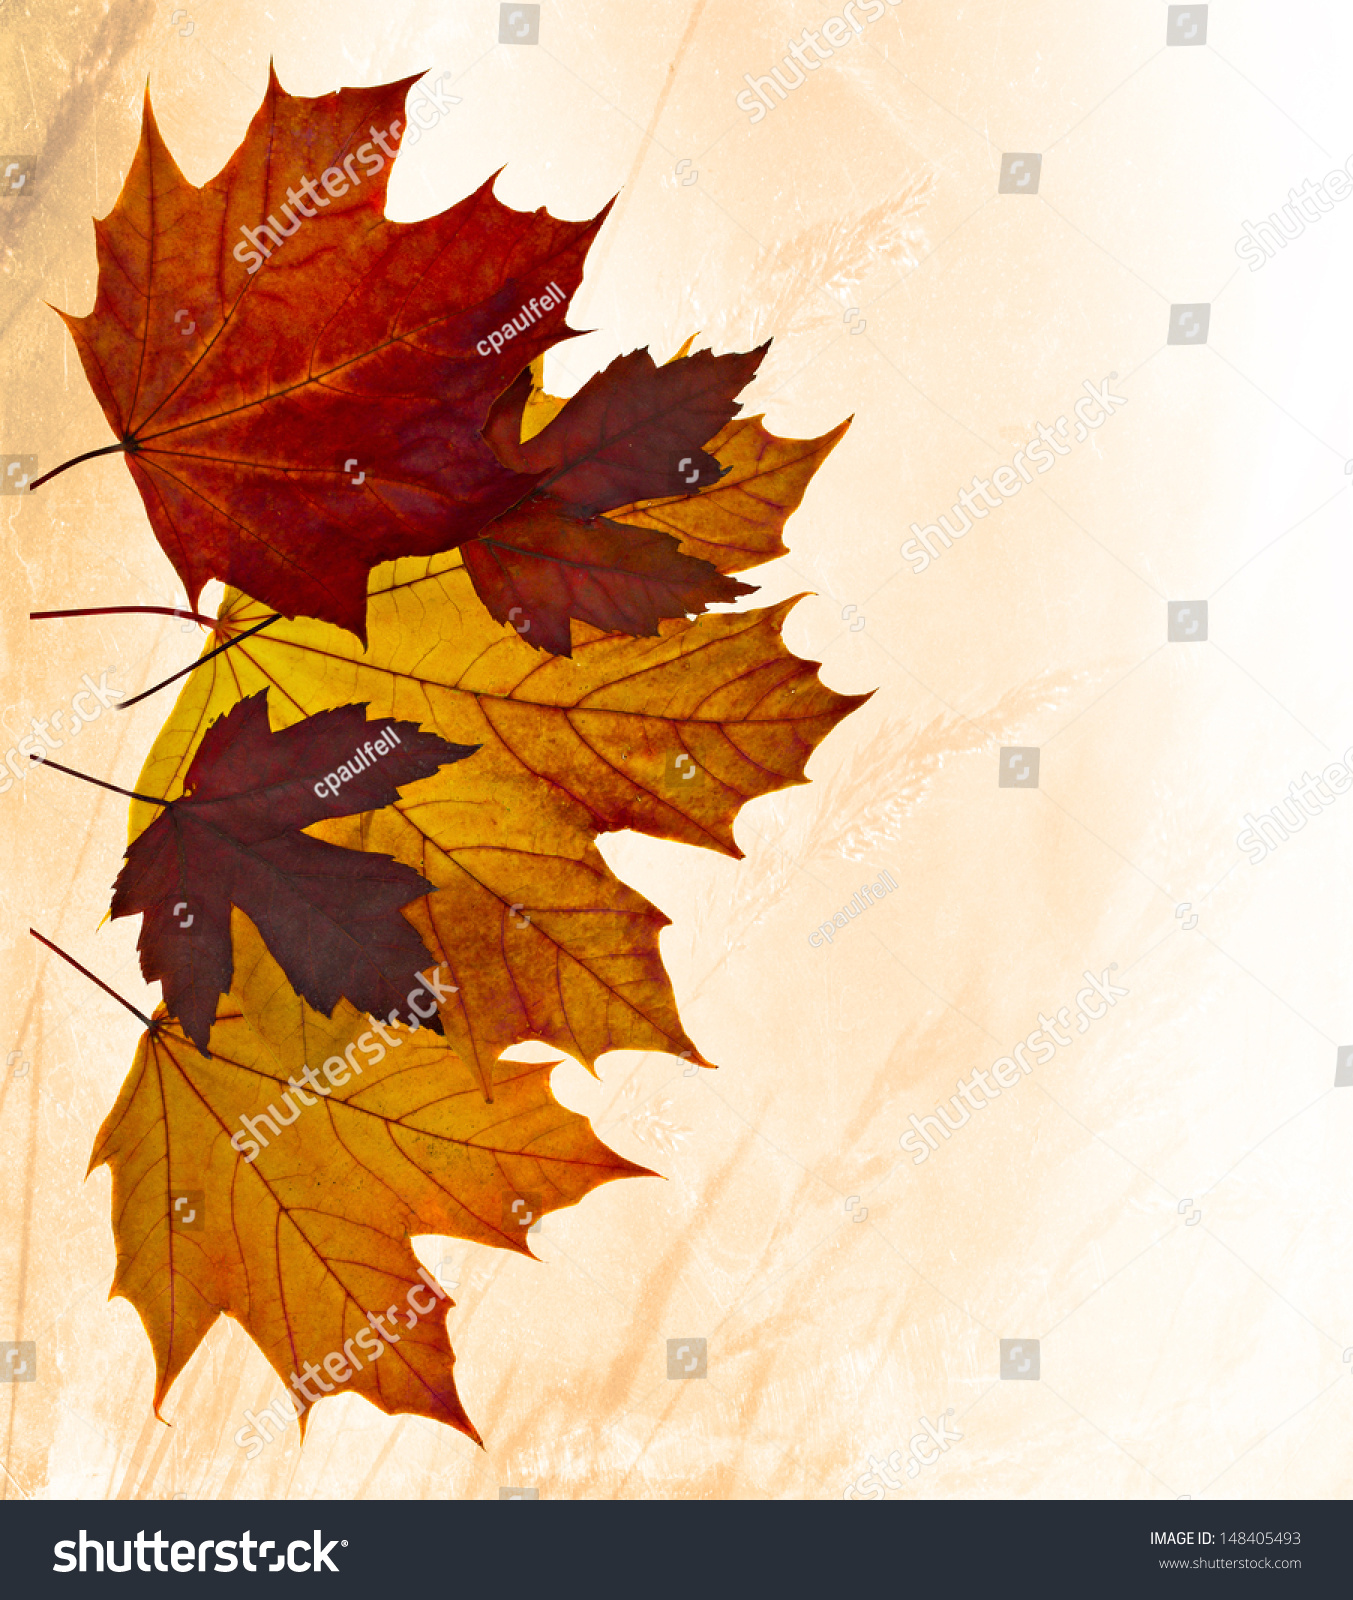 stock-photo-colorful-autumn-leaves-with-